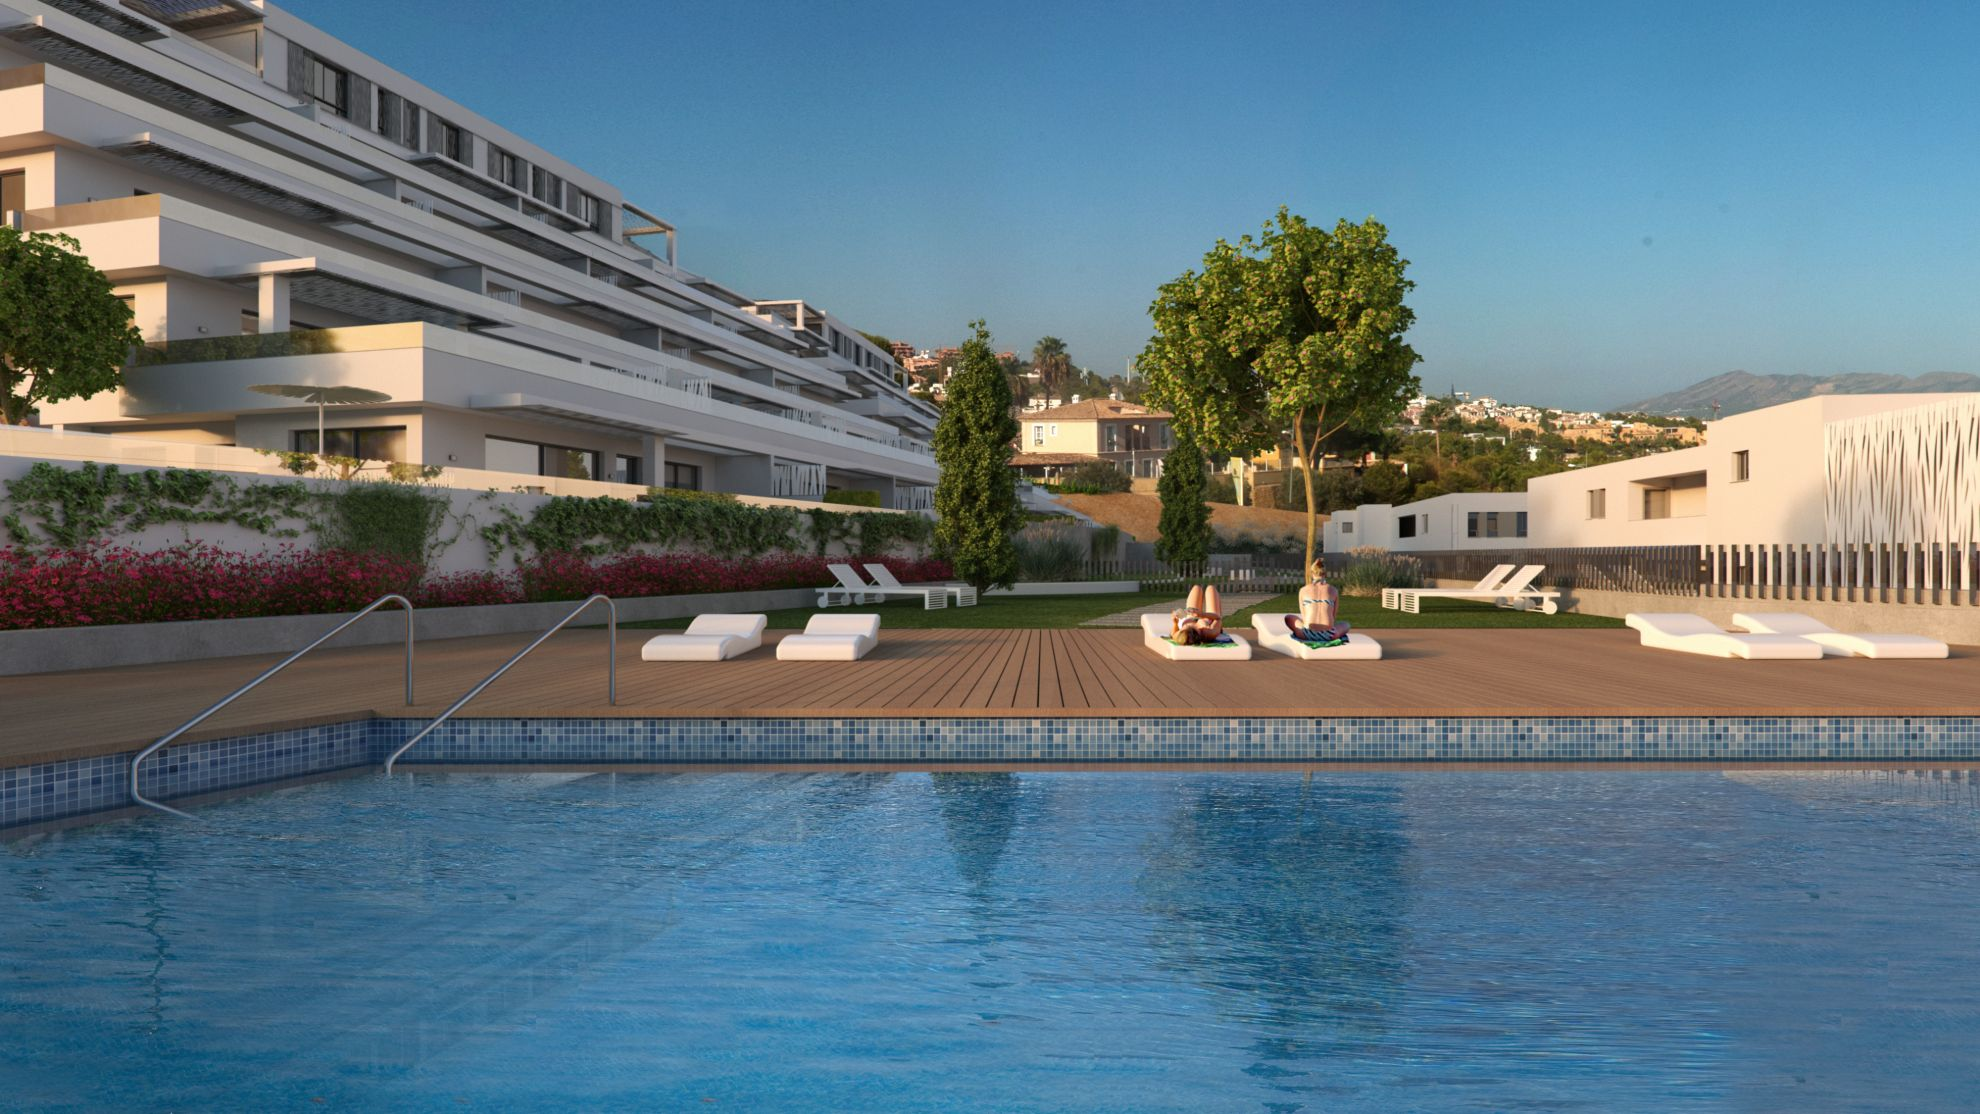 2 and 3 bedroom apartment in a fully equipped complex overlooking the sea in Finestrat 5